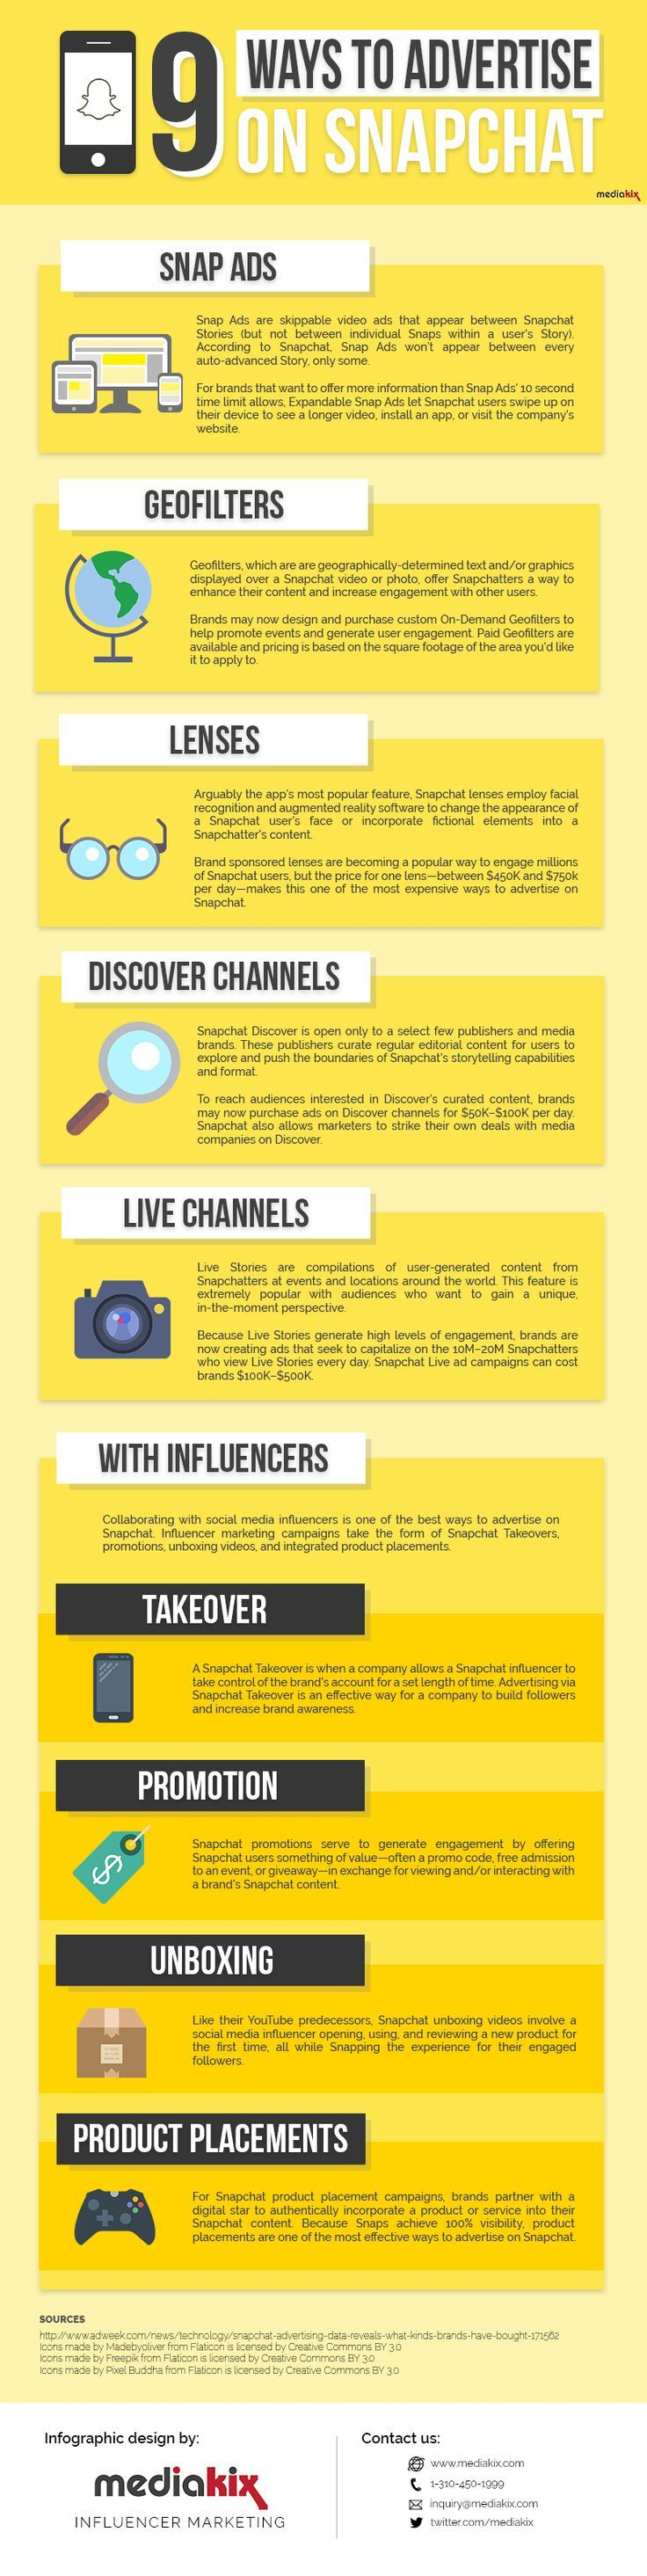 The 9 Ways to Advertise on Snapchat [INFOGRAPHIC http://simplymeasured.com/blog/the-9-ways-to-advertise-on-snapchat-infographic/